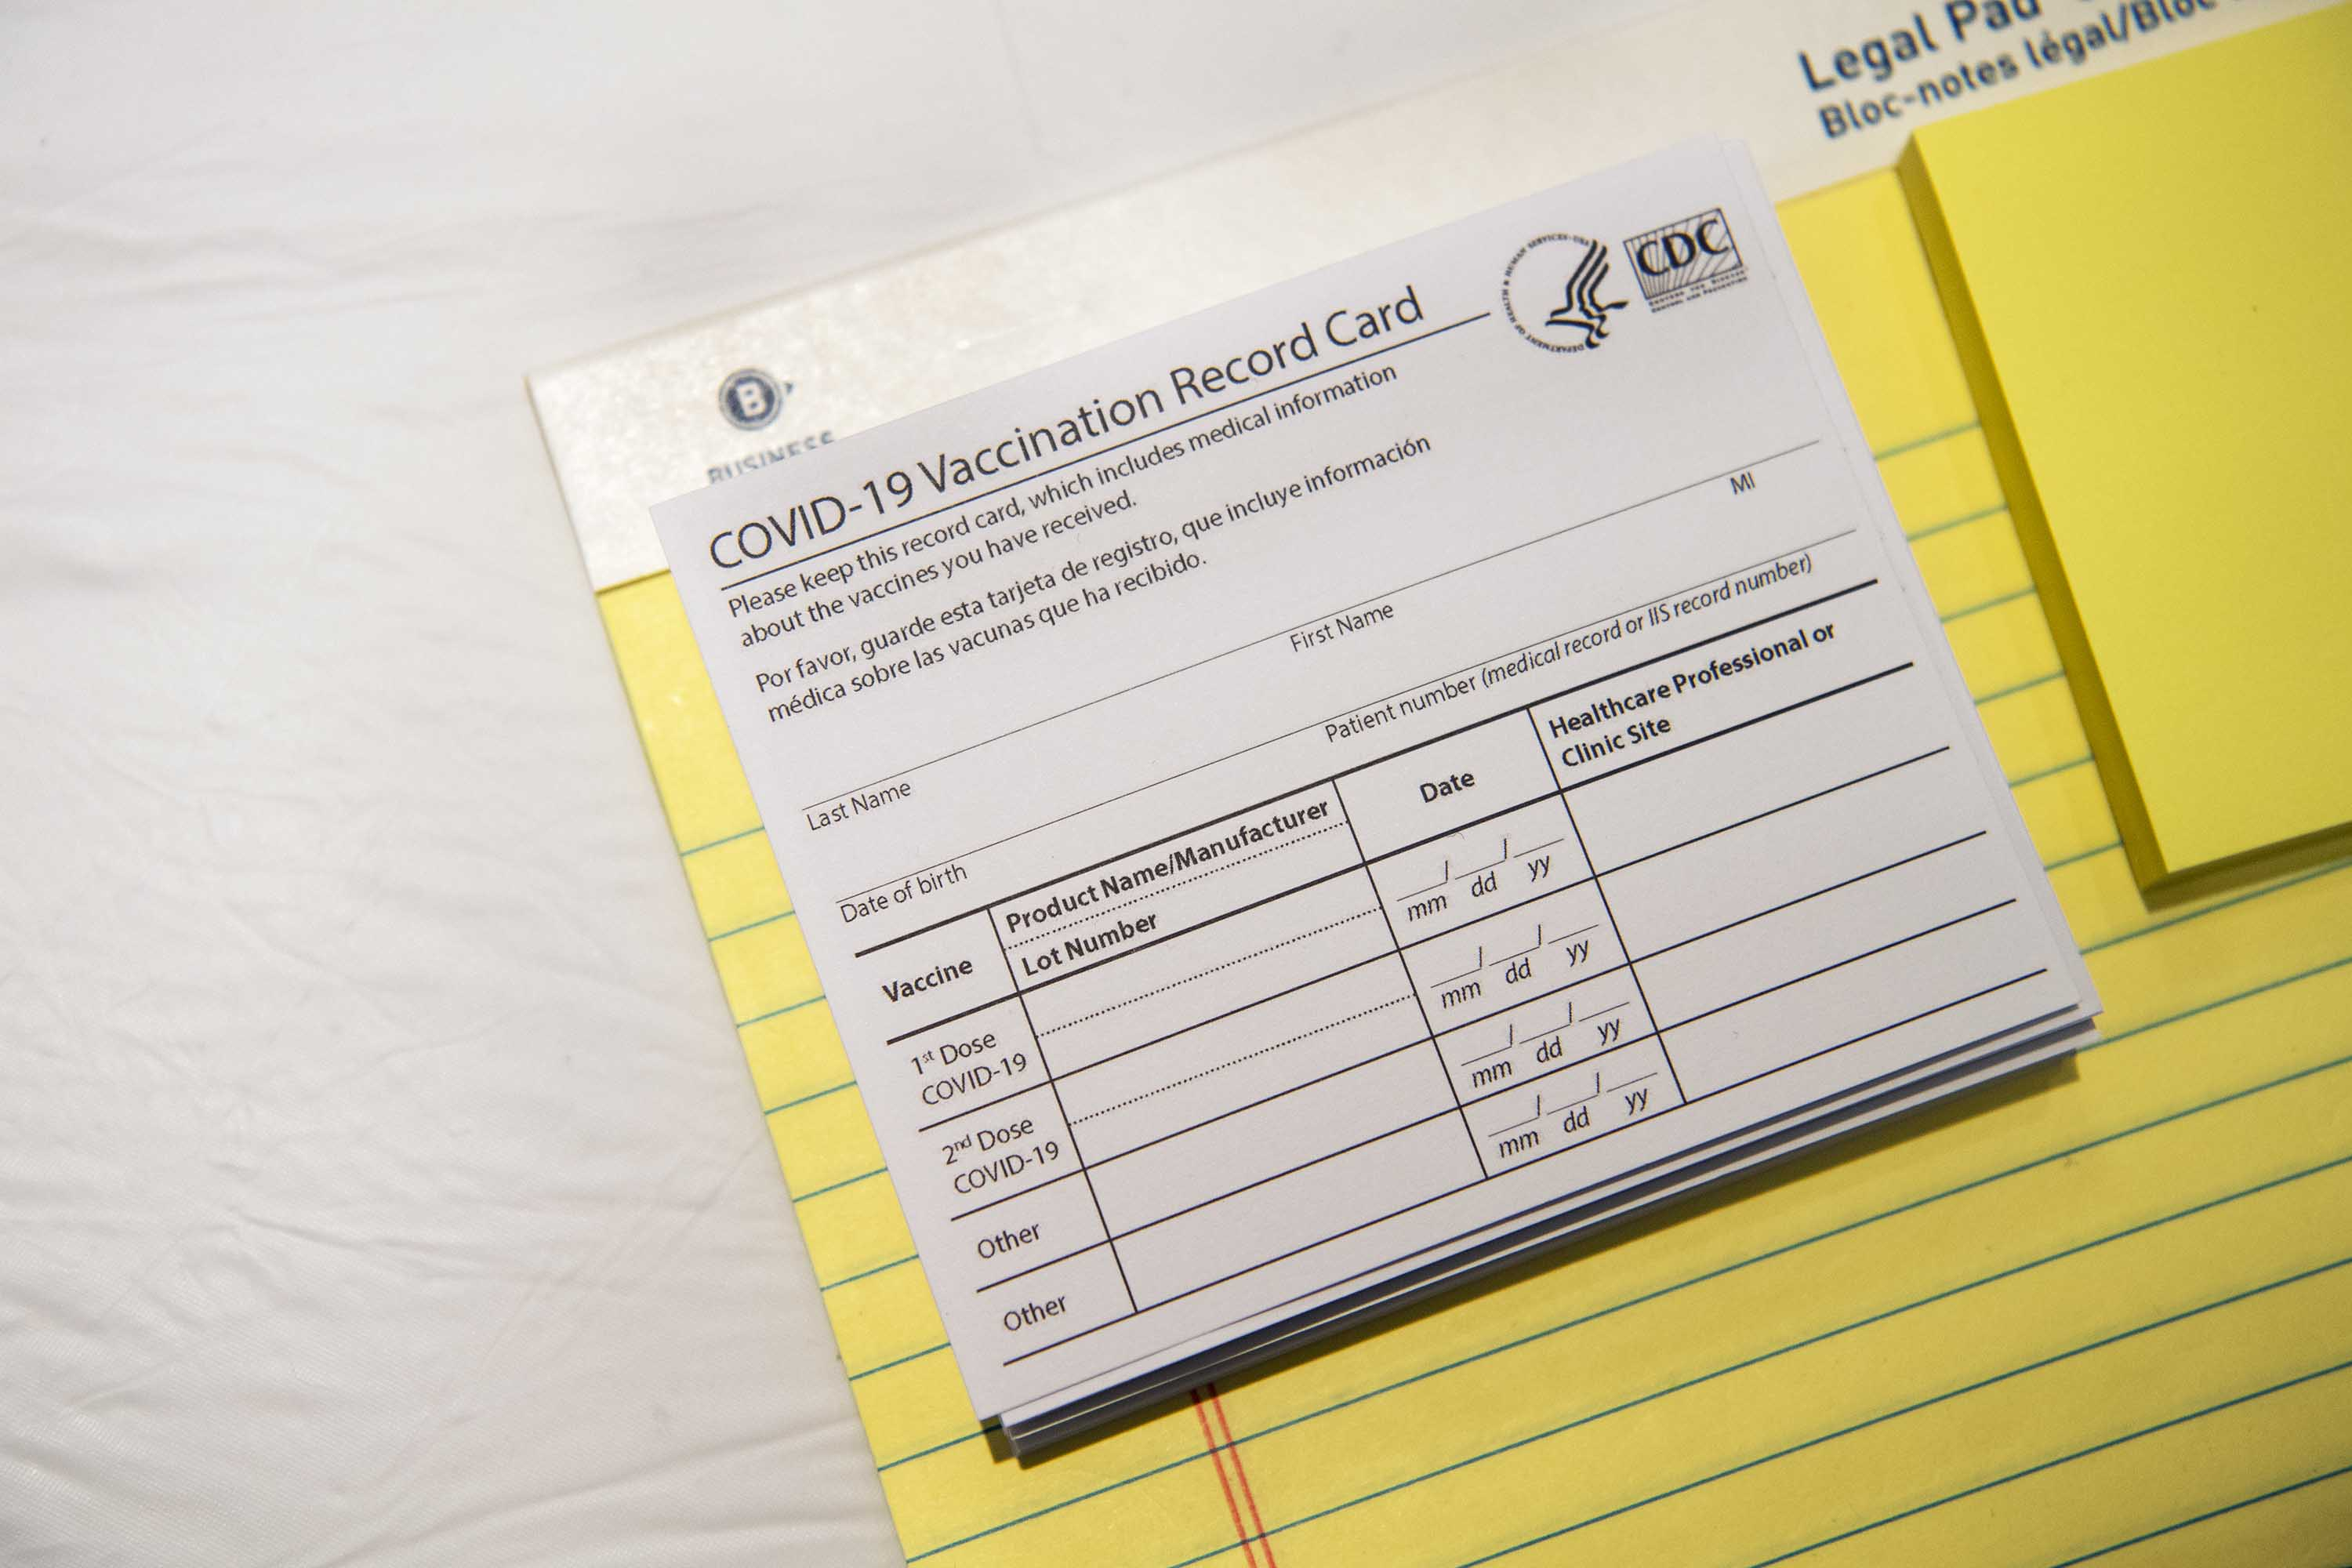 A Covid-19 vaccination record card is pictured at a vaccination site in Tysons, Virginia, on April 19.